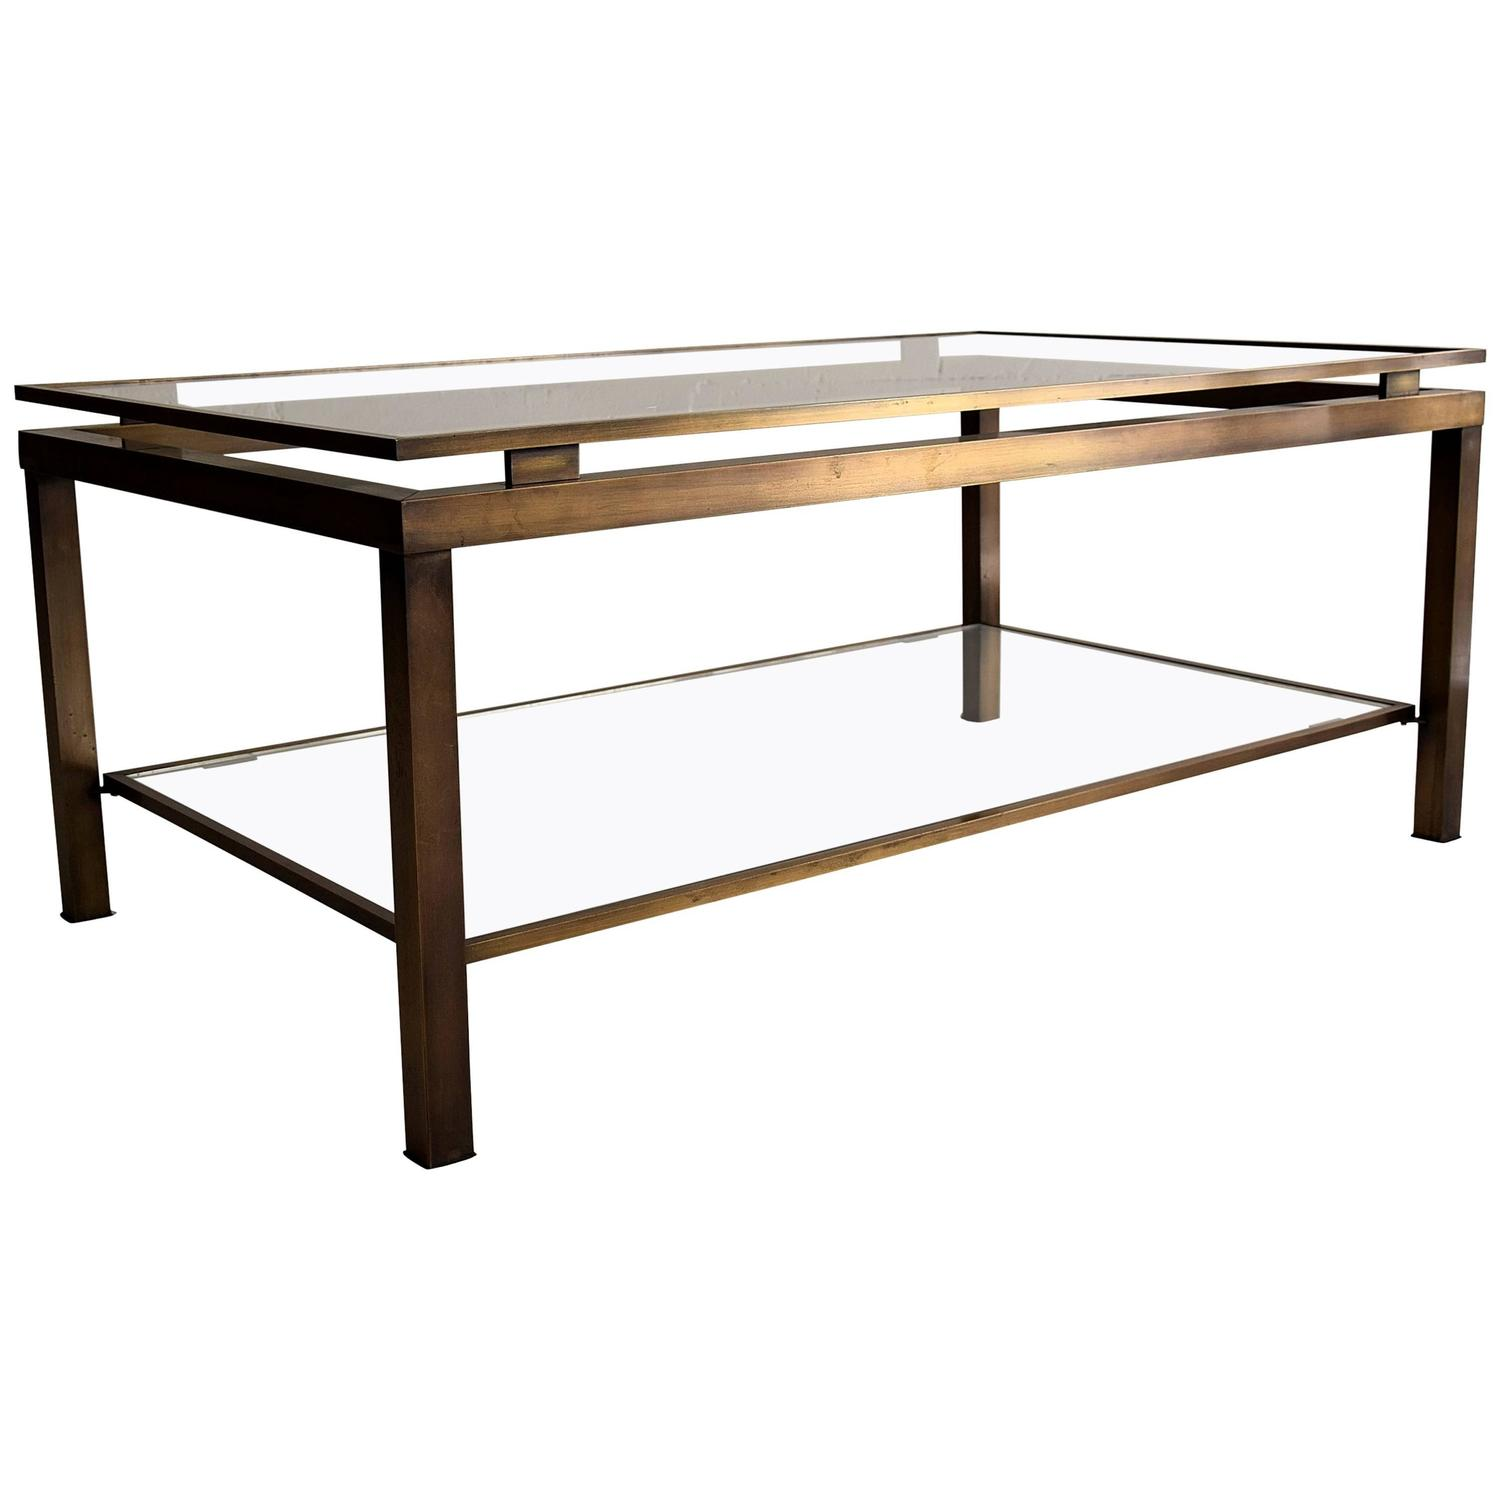 1970s Brass Coffee Table By Guy Lefevre For Maison Jansen At 1stdibs